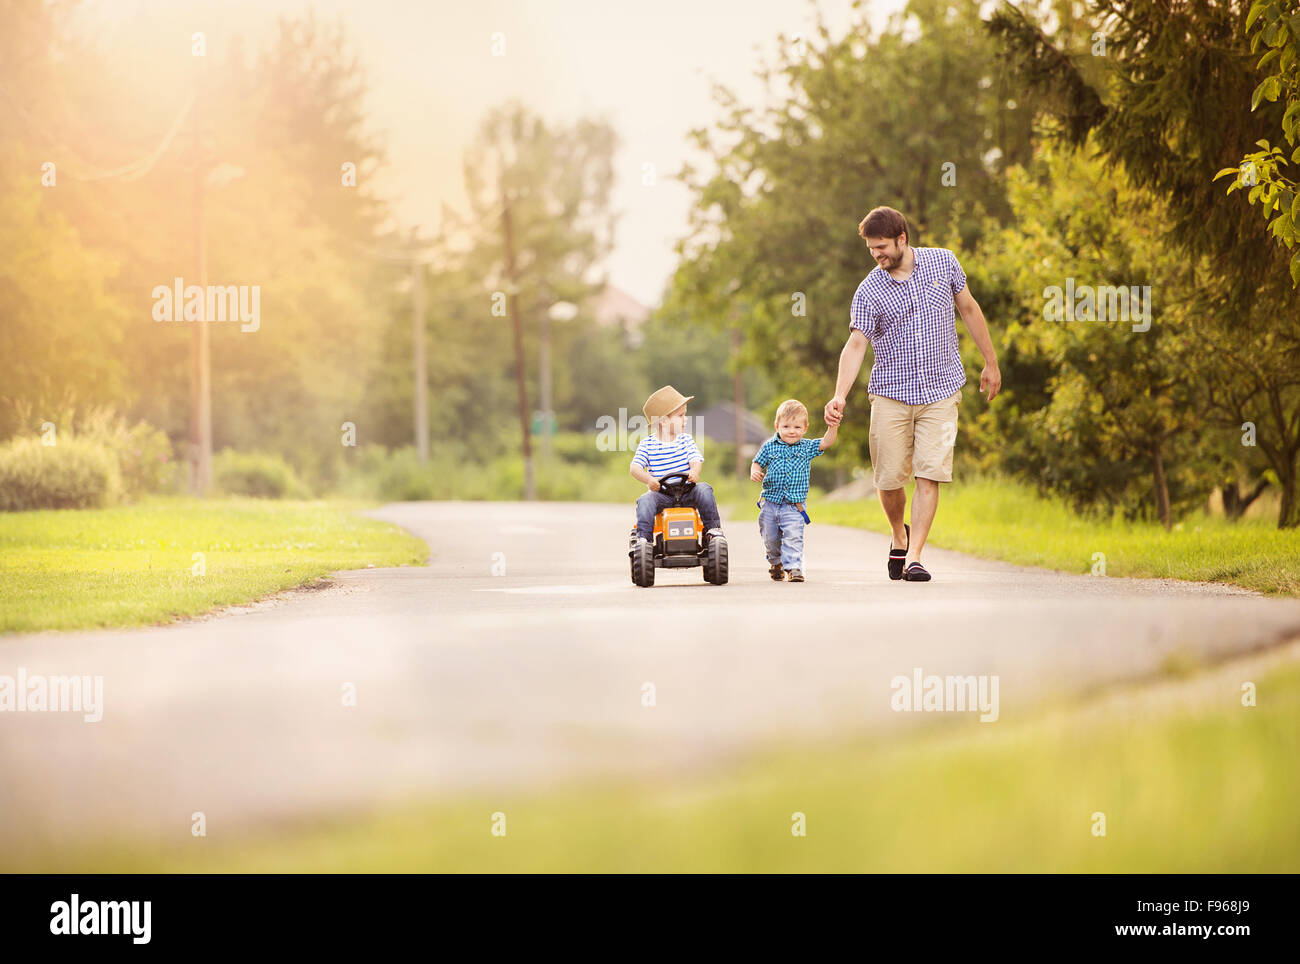 Happy young father with his two little sons have fun on road, one boy is riding on little tractor, other boy is - Stock Image